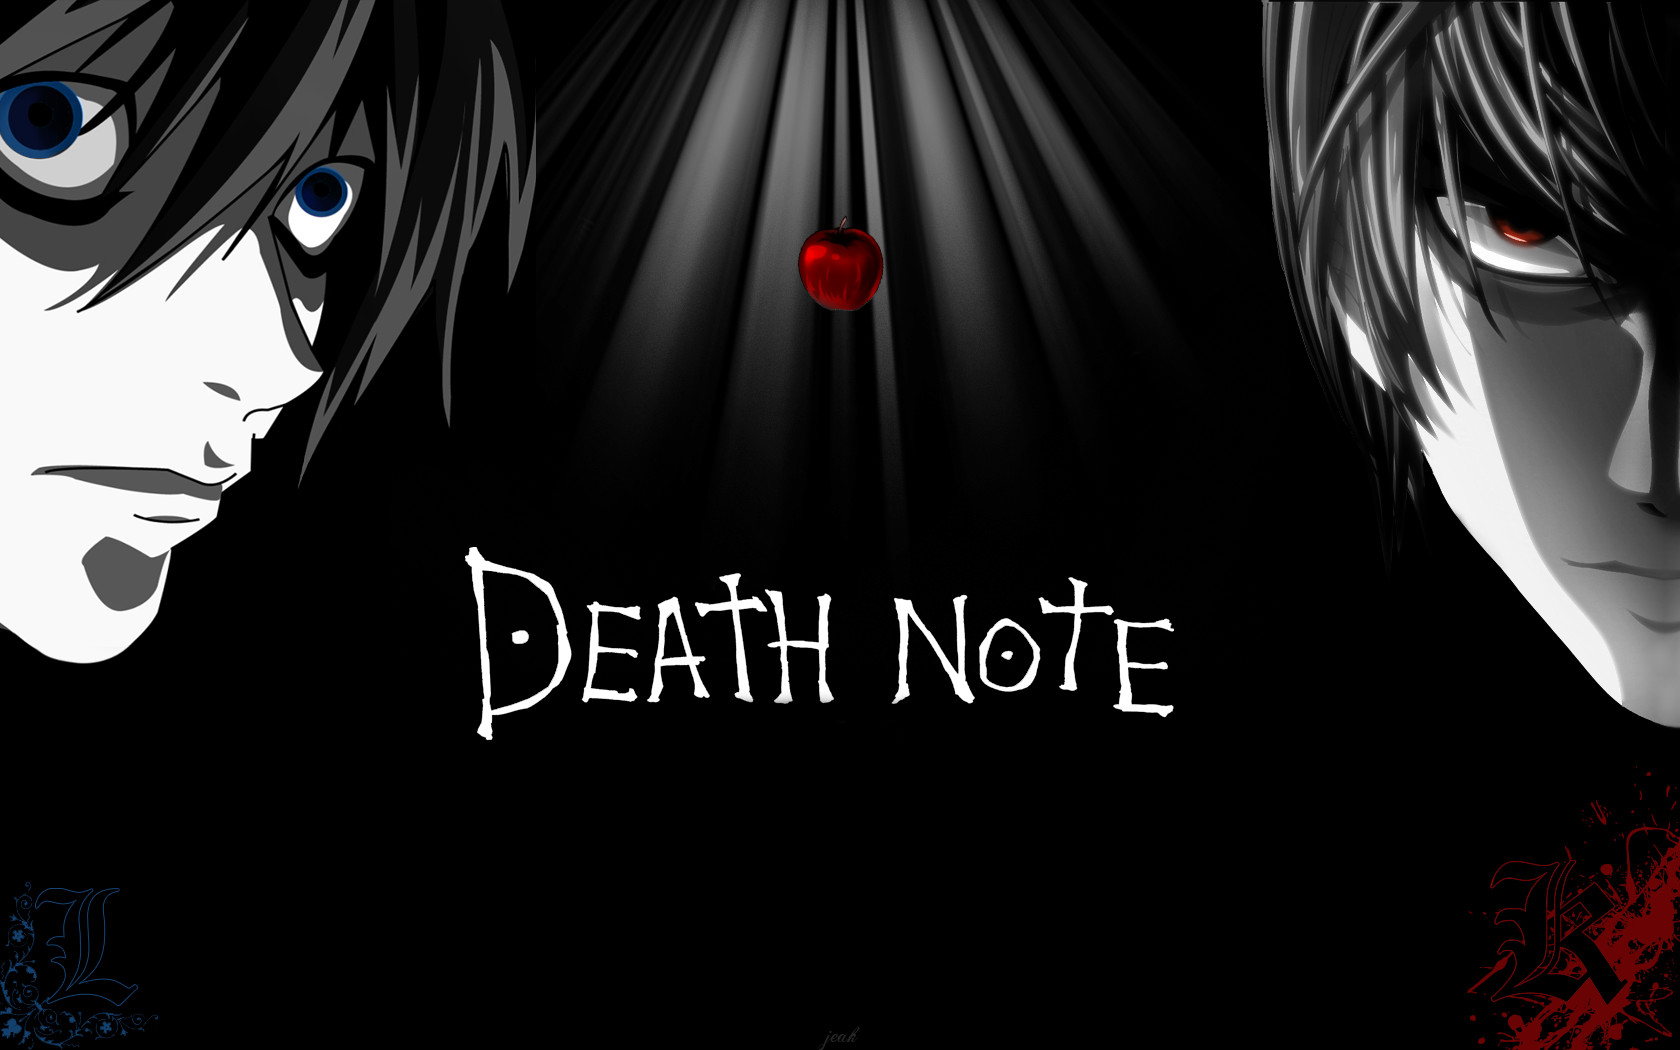 Death Note Wallpaper 1680x1050 14750